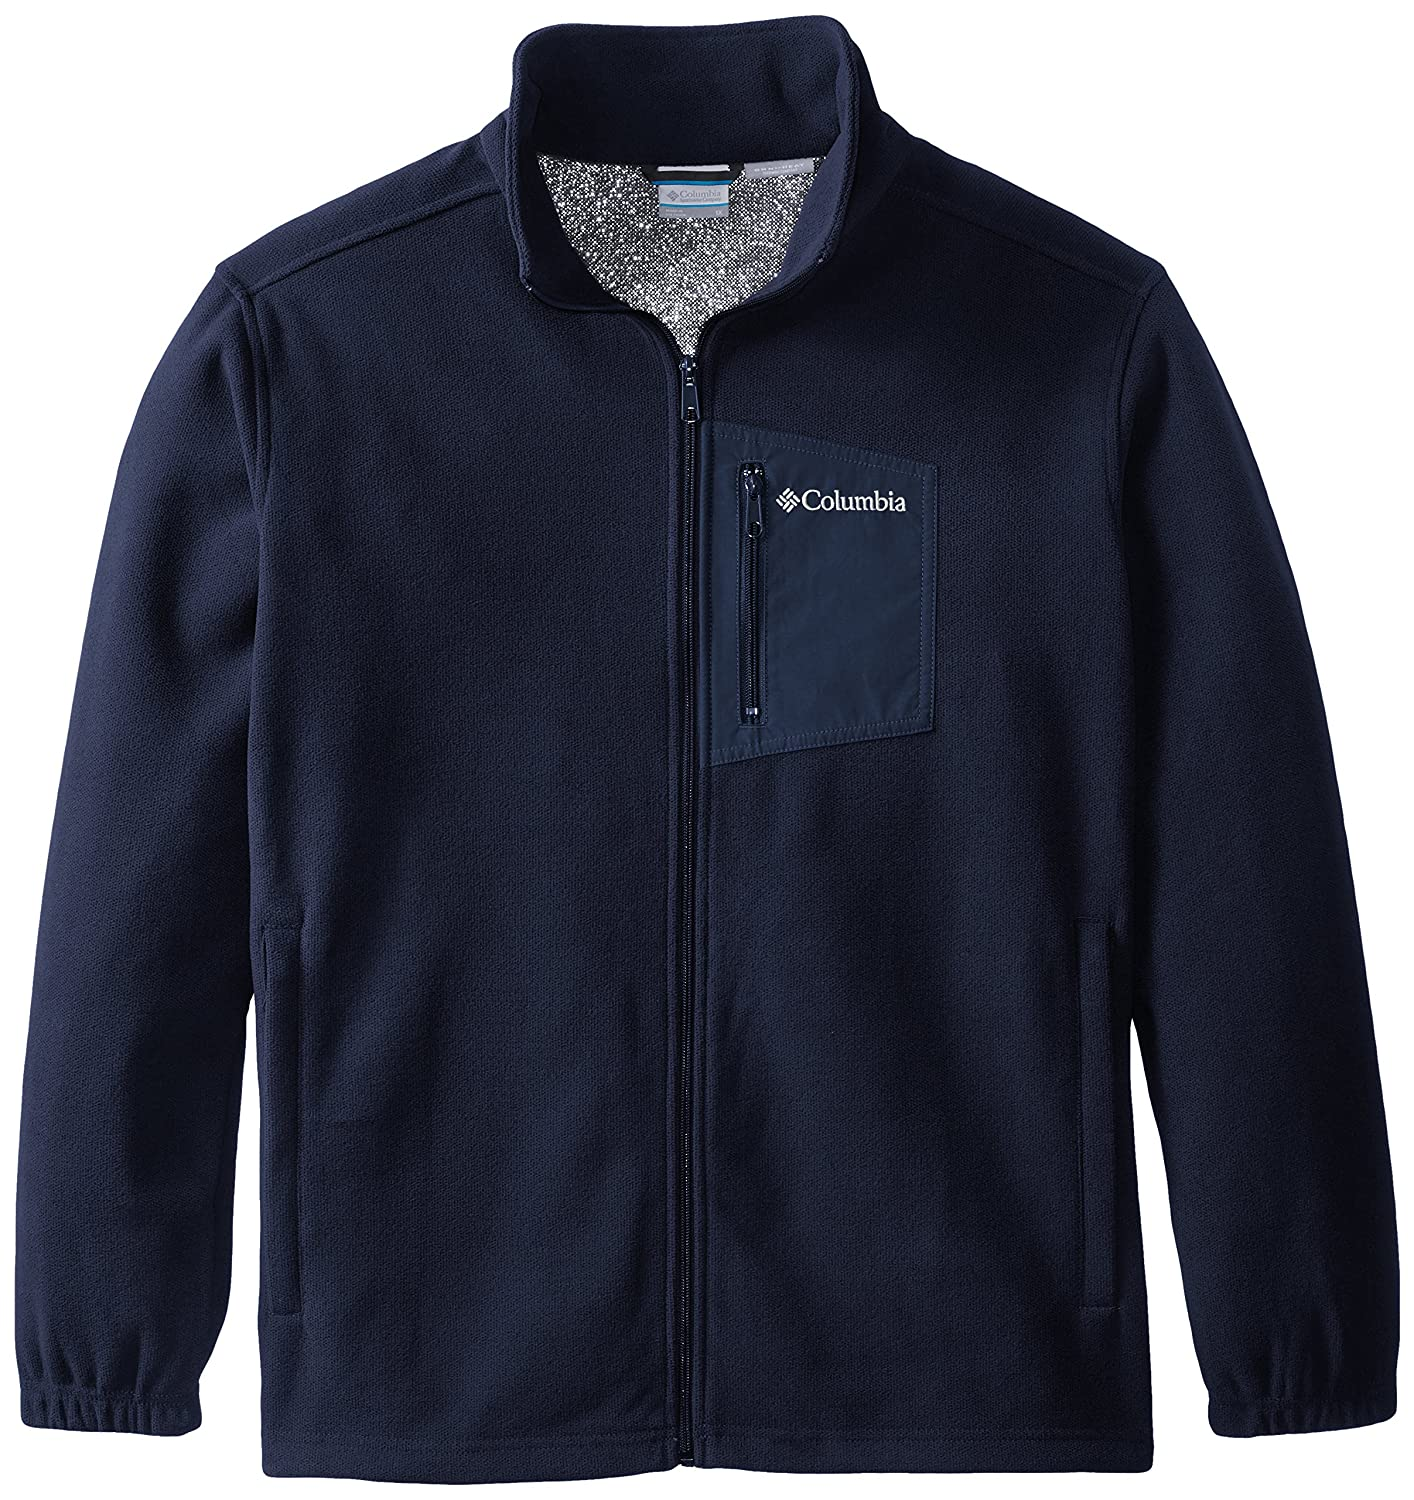 Columbia Sportswear Men's Big Hot Dots II Full Zip Jacket Columbia (Sporting Goods)